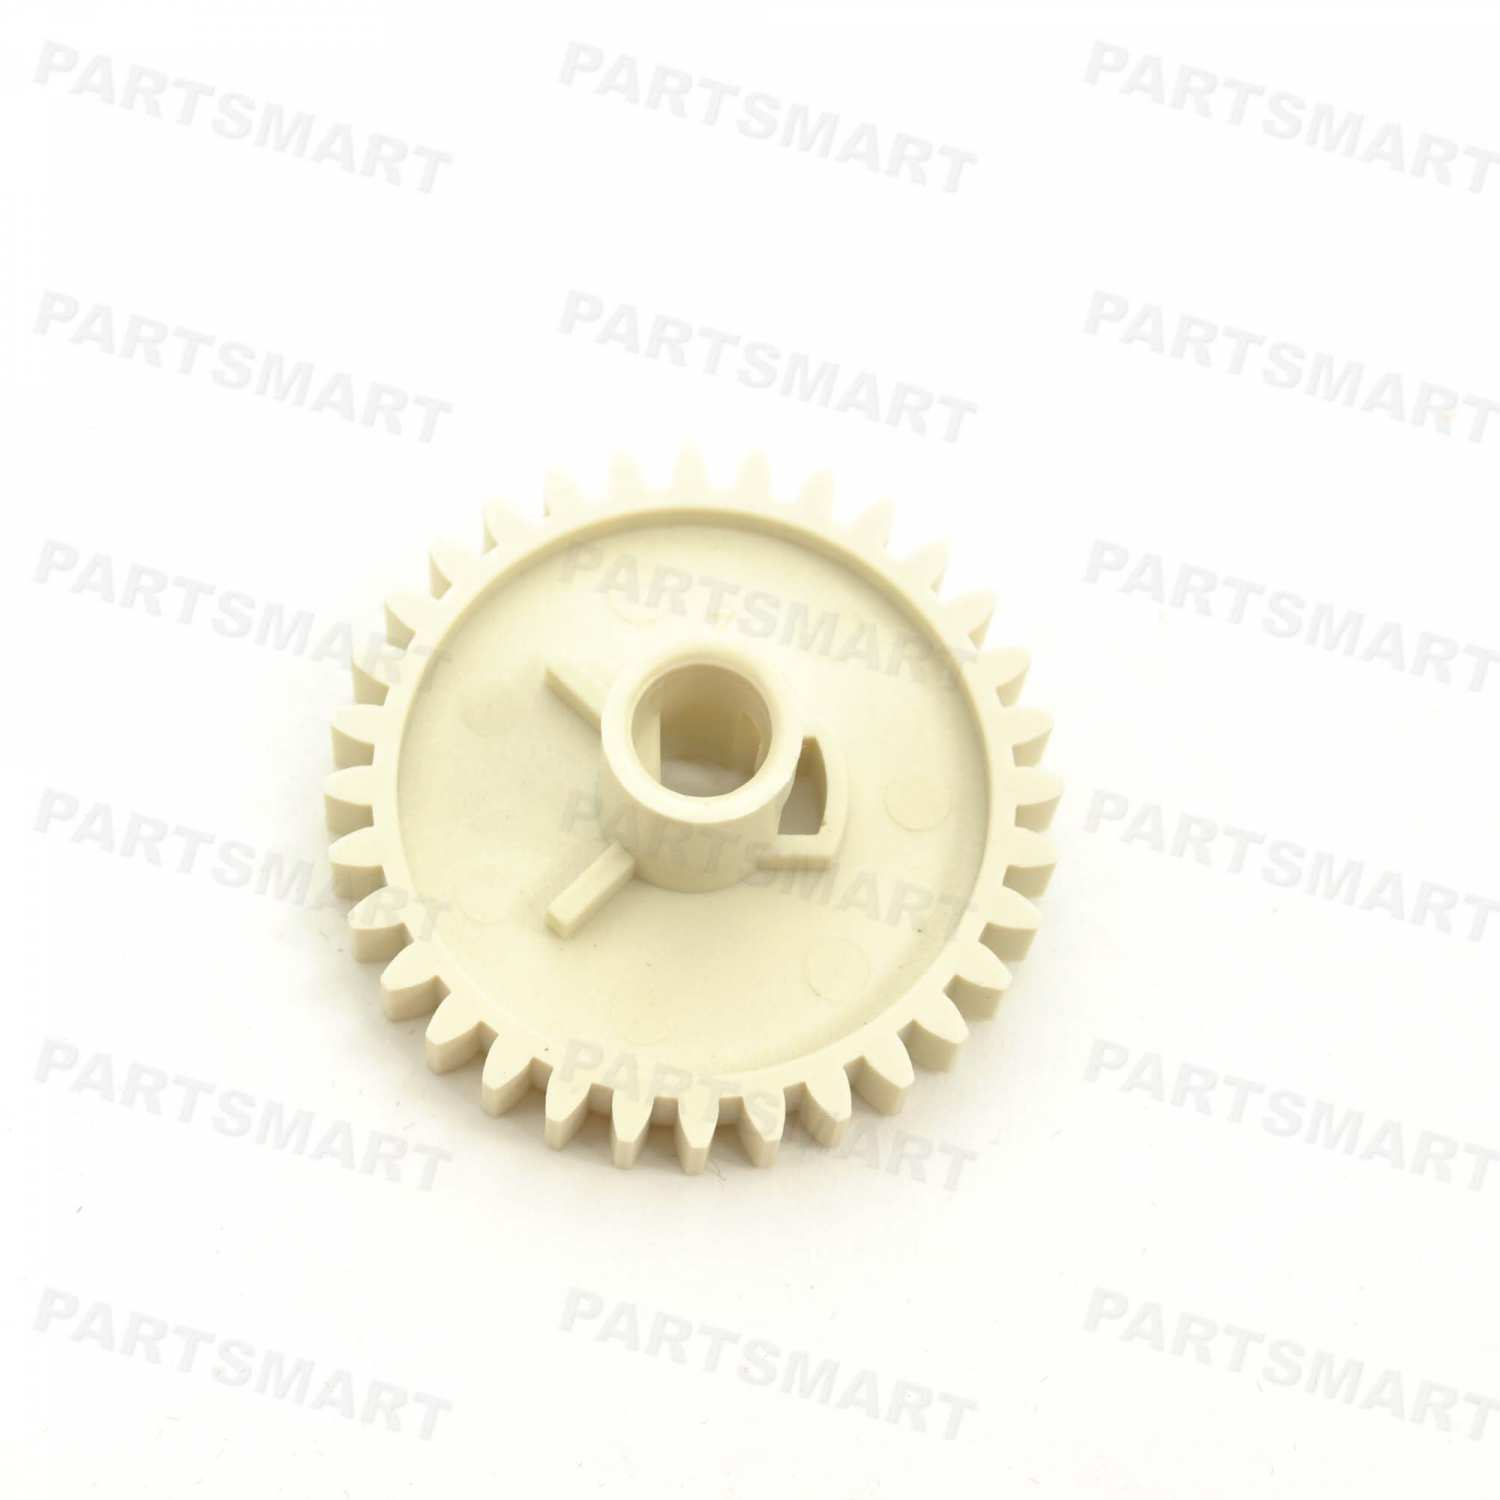 RU6-0112-000 Fuser Gear (32T) for HP Color LaserJet CP1215, Color LaserJet CP1525